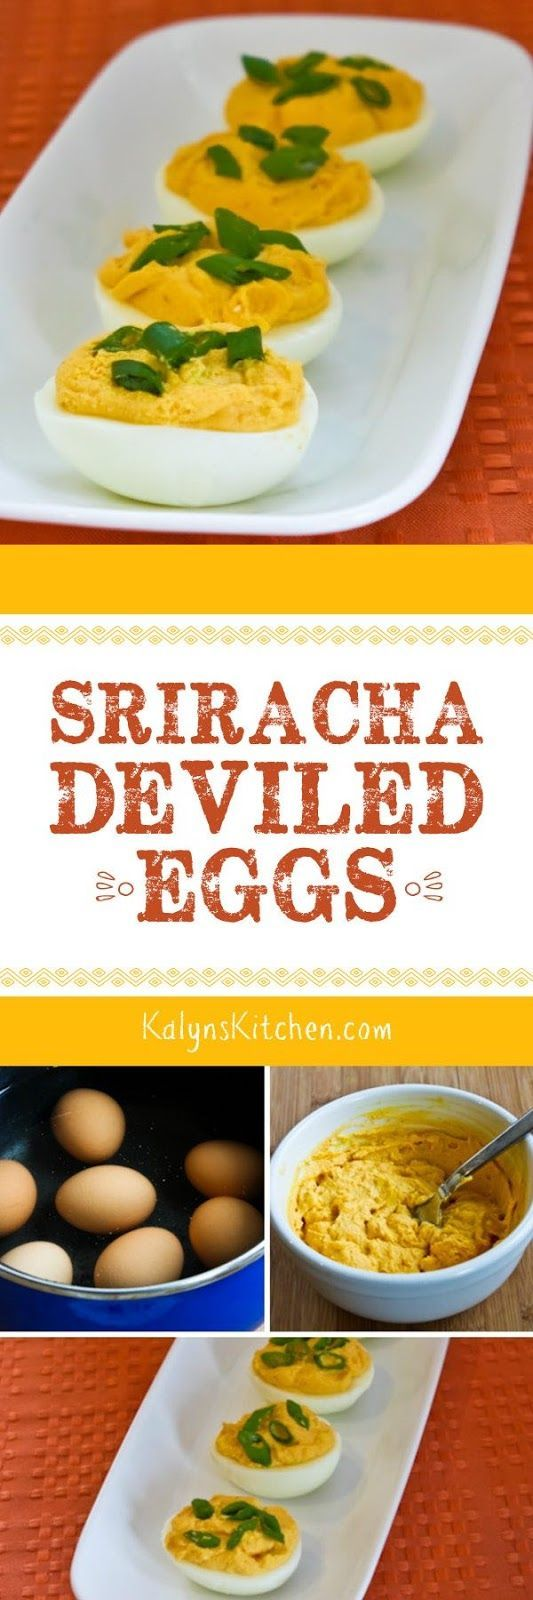 I  love deviled eggs and these Sriracha Deviled Eggs are one of my favorites. This post also has Ten More Interesting Ideas for Deviled Eggs. [found on KalynsKitchen.com]